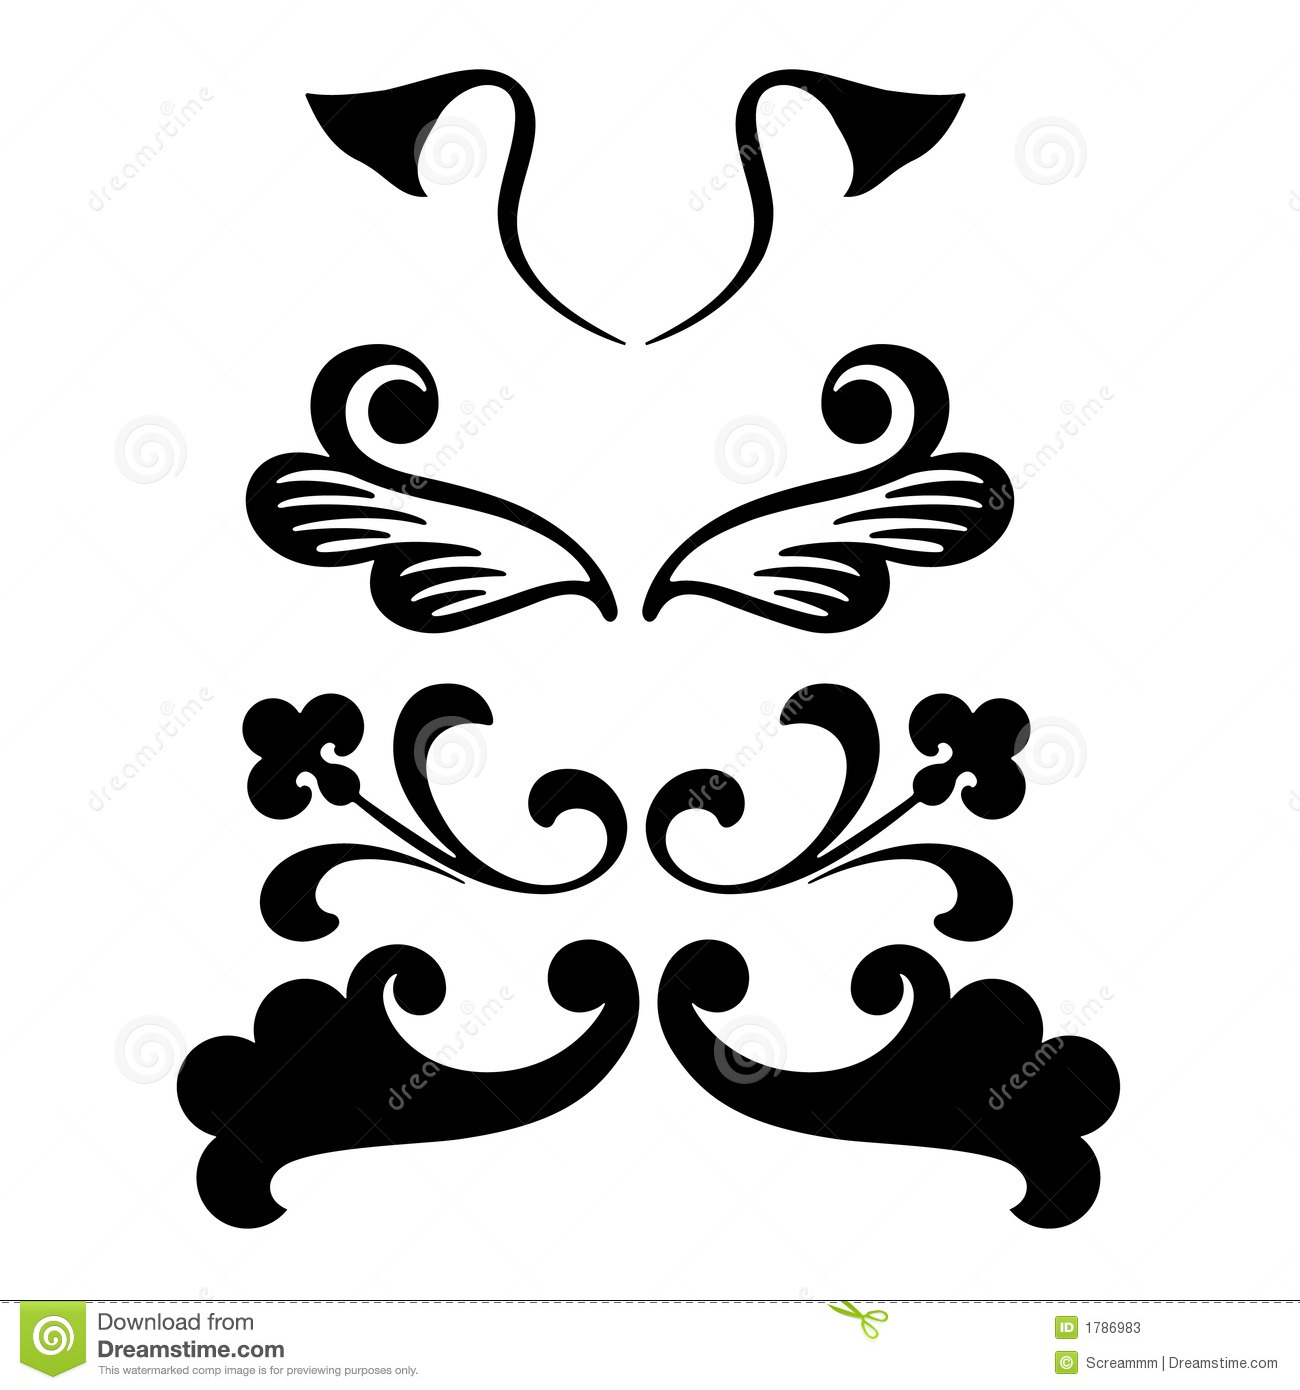 Decorative ornament shapes stock vector. Image of cool ...